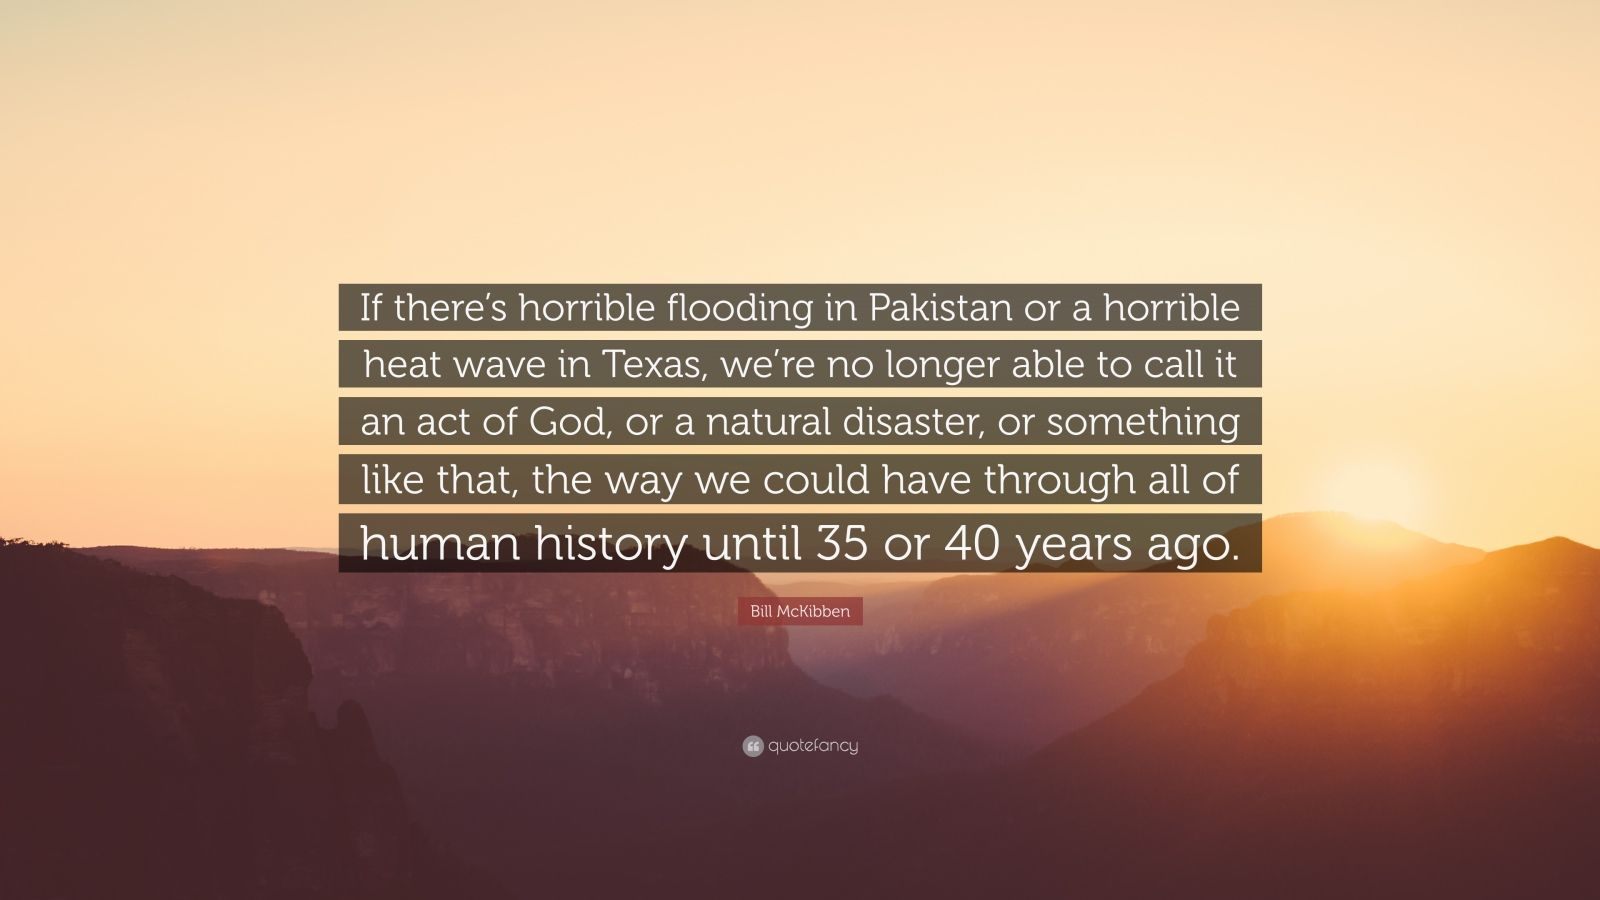 """Bill McKibben Quote: """"If there's horrible flooding in Pakistan or a horrible heat wave in Texas, we're no longer able to call it an act of God, or a natural disaster, or something like that, the way we could have through all of human history until 35 or 40 years ago."""""""